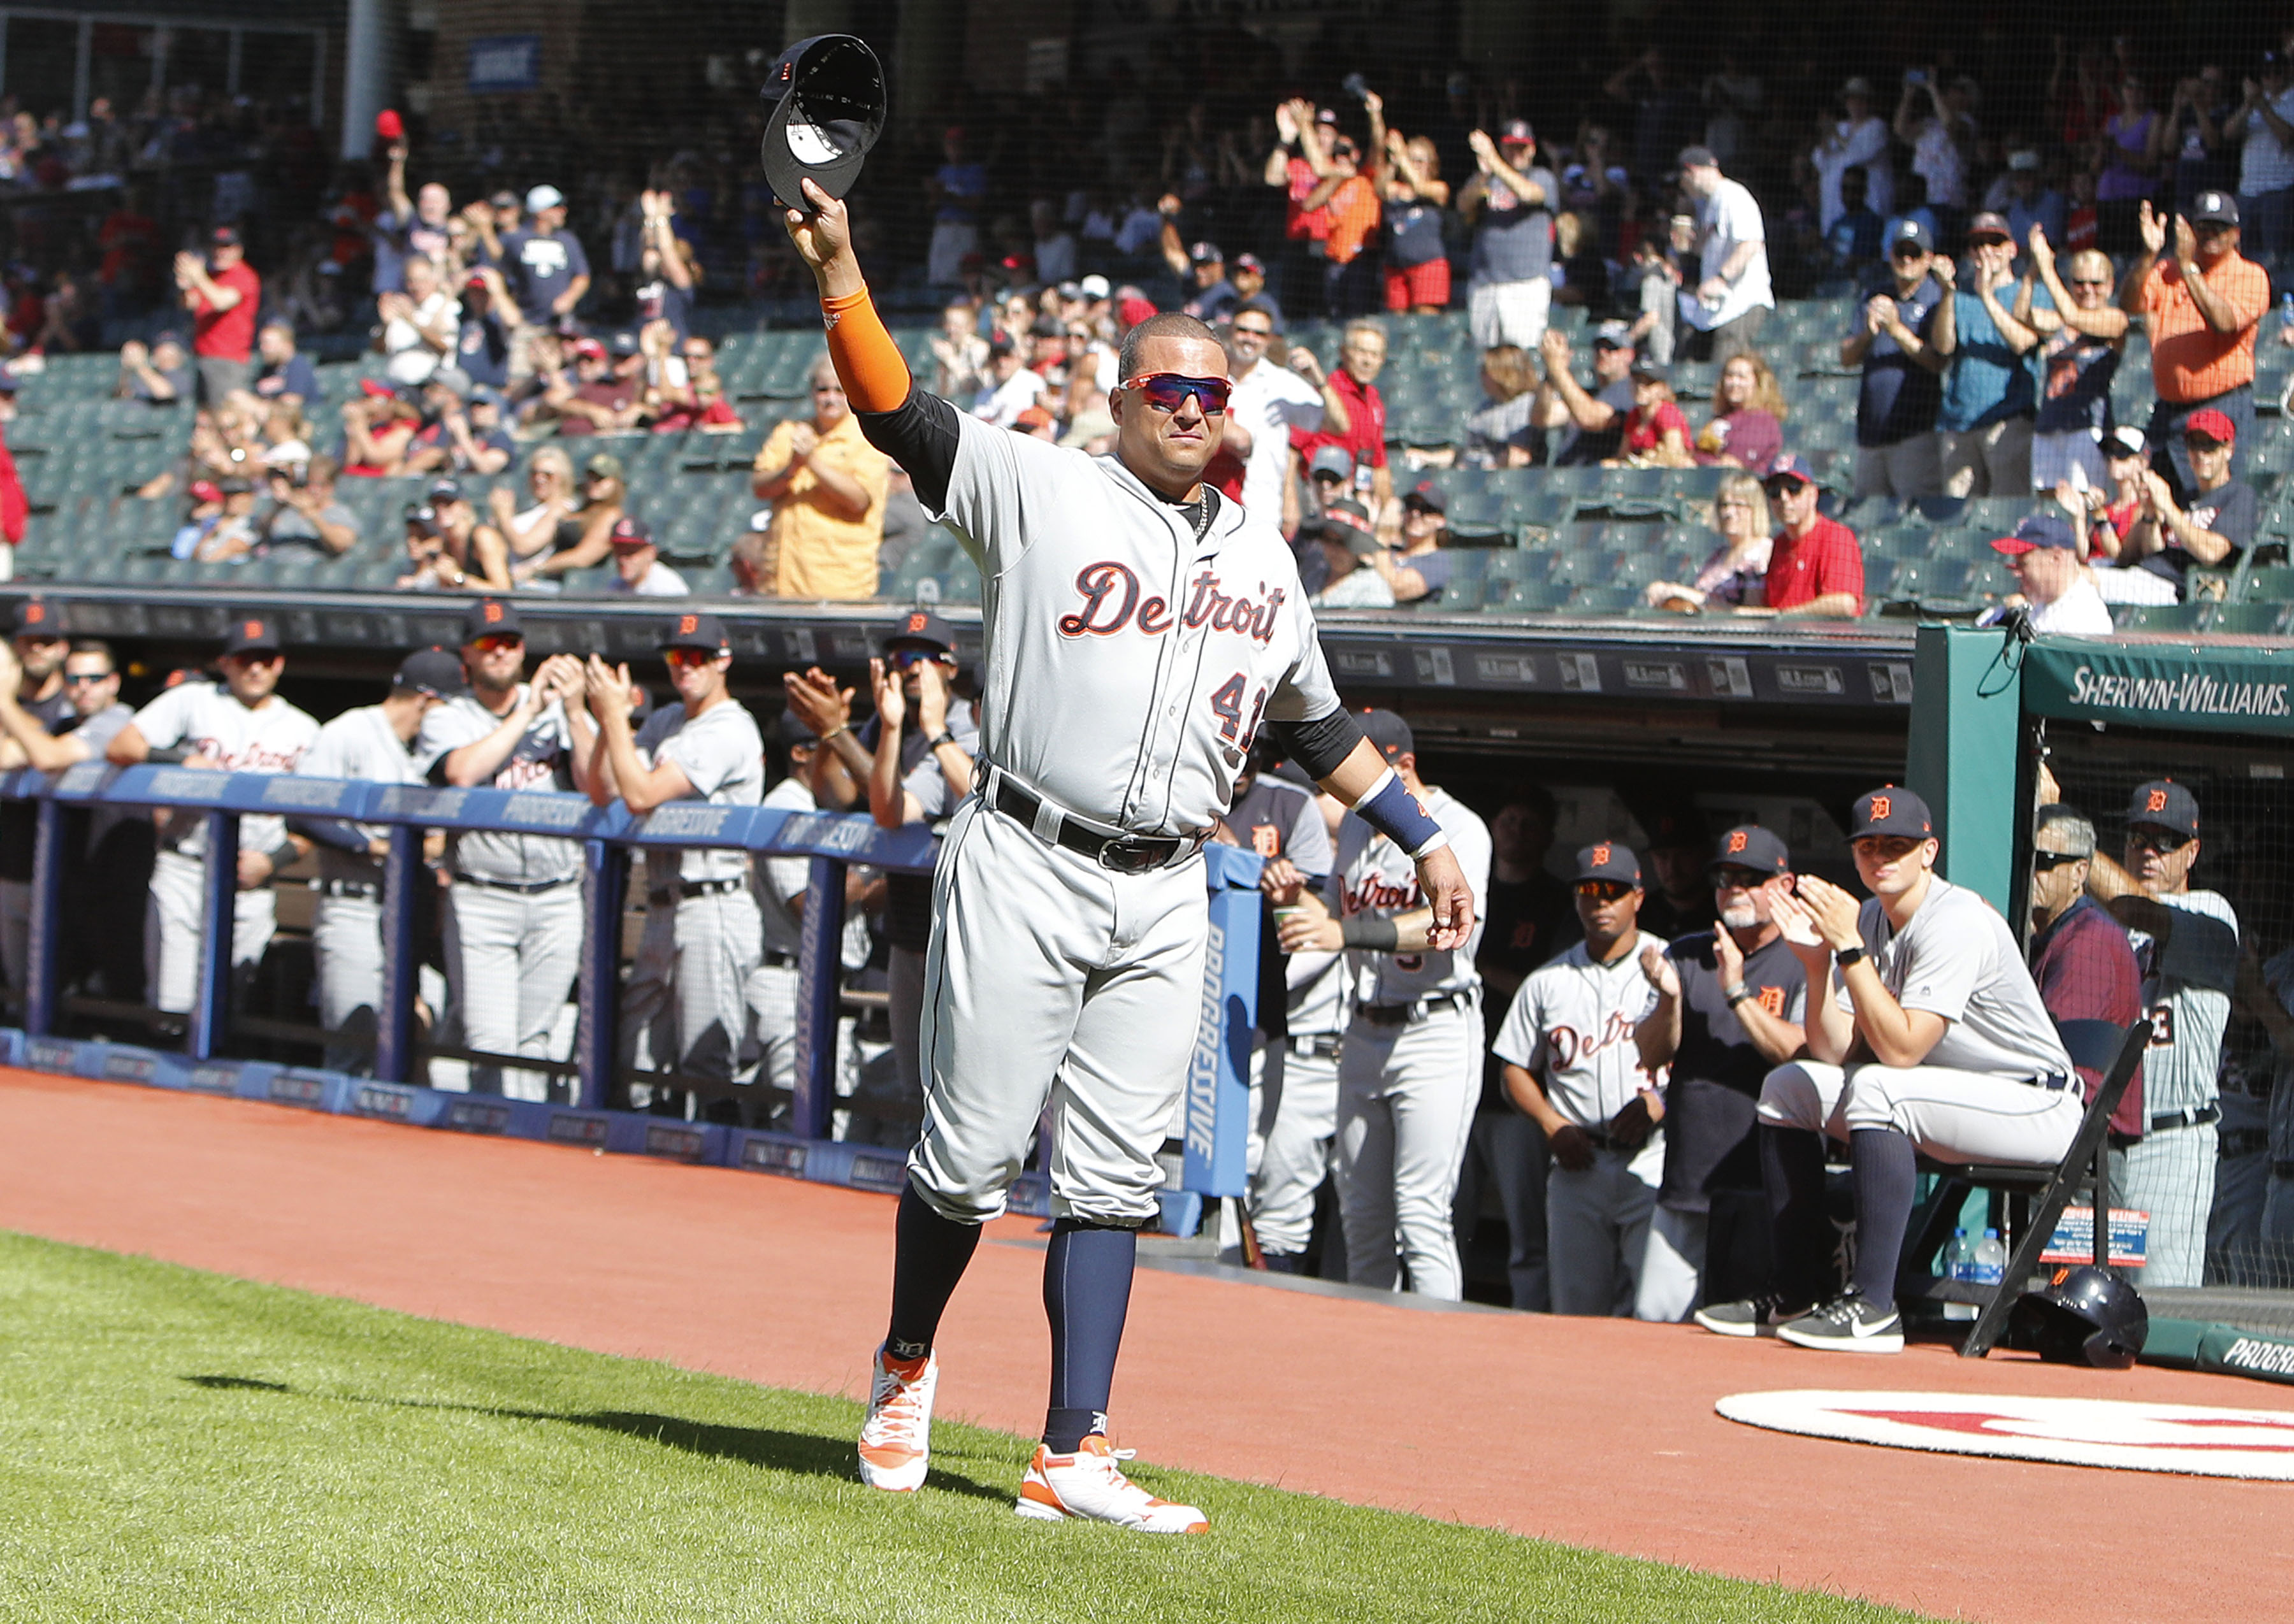 Victor Martinez waves to fans in Cleveland.